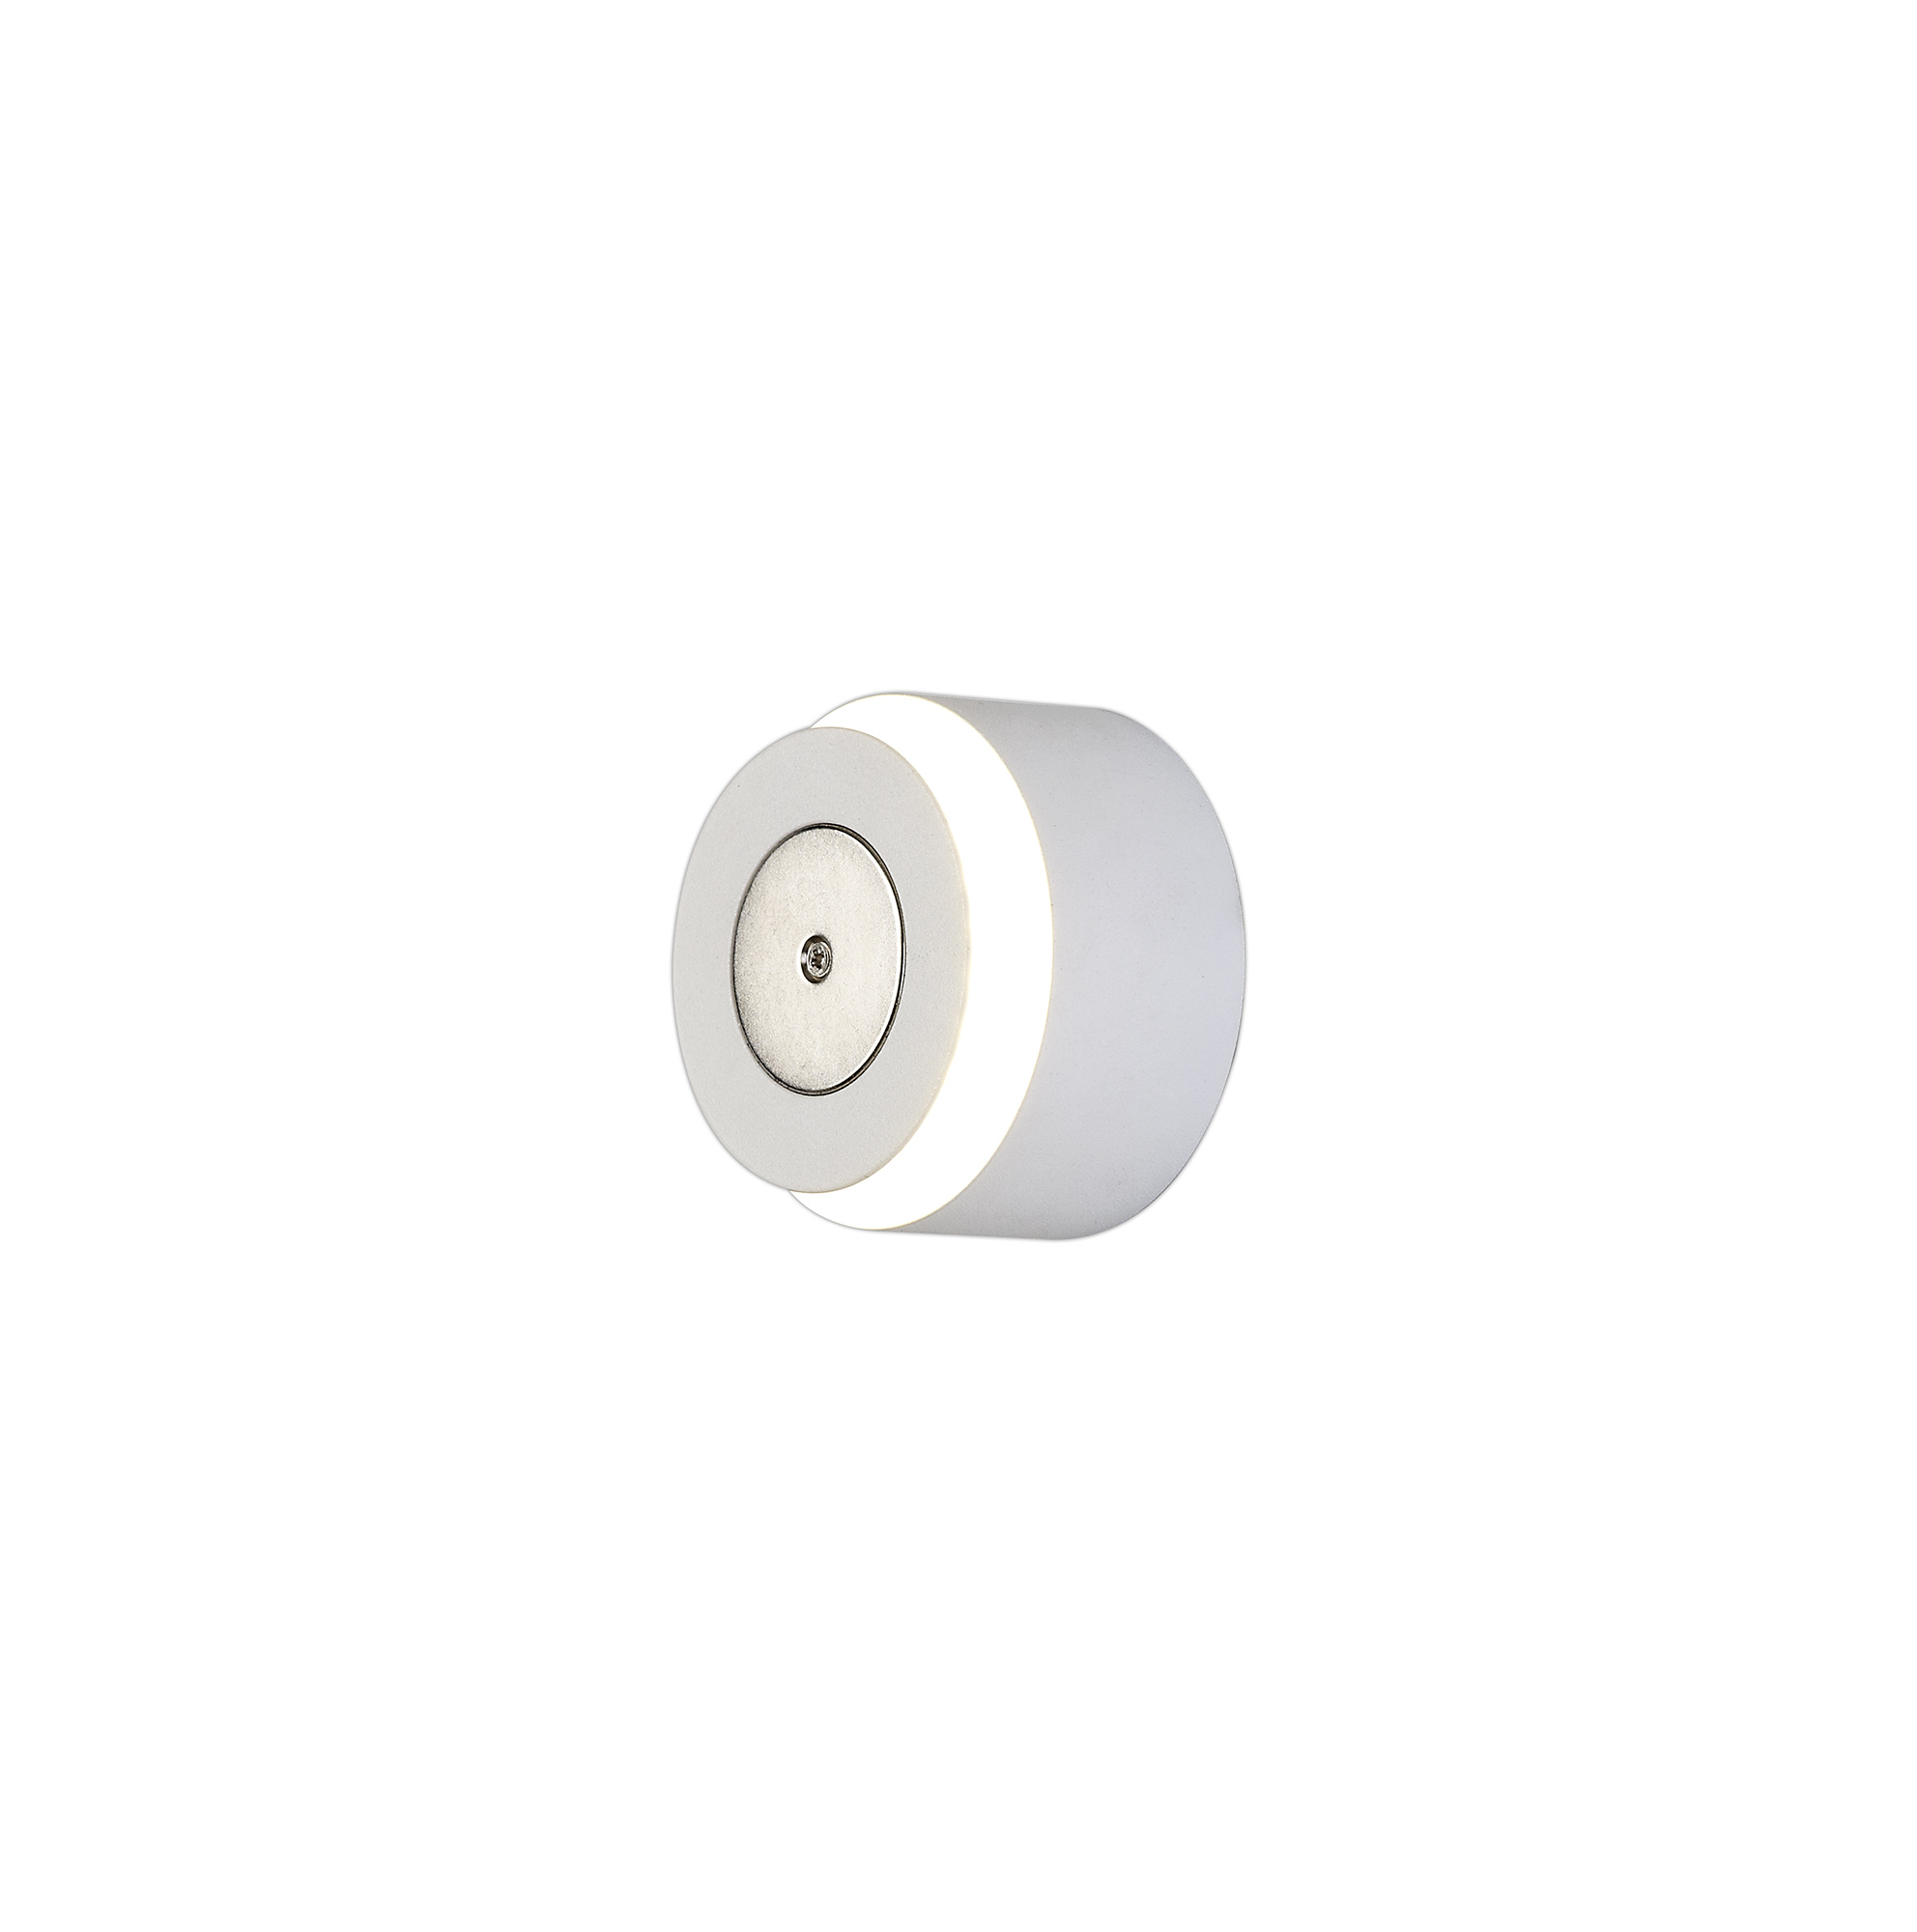 Magnetic Base Wall Lamp, 12W LED 3000K 498lm, 20cm Round